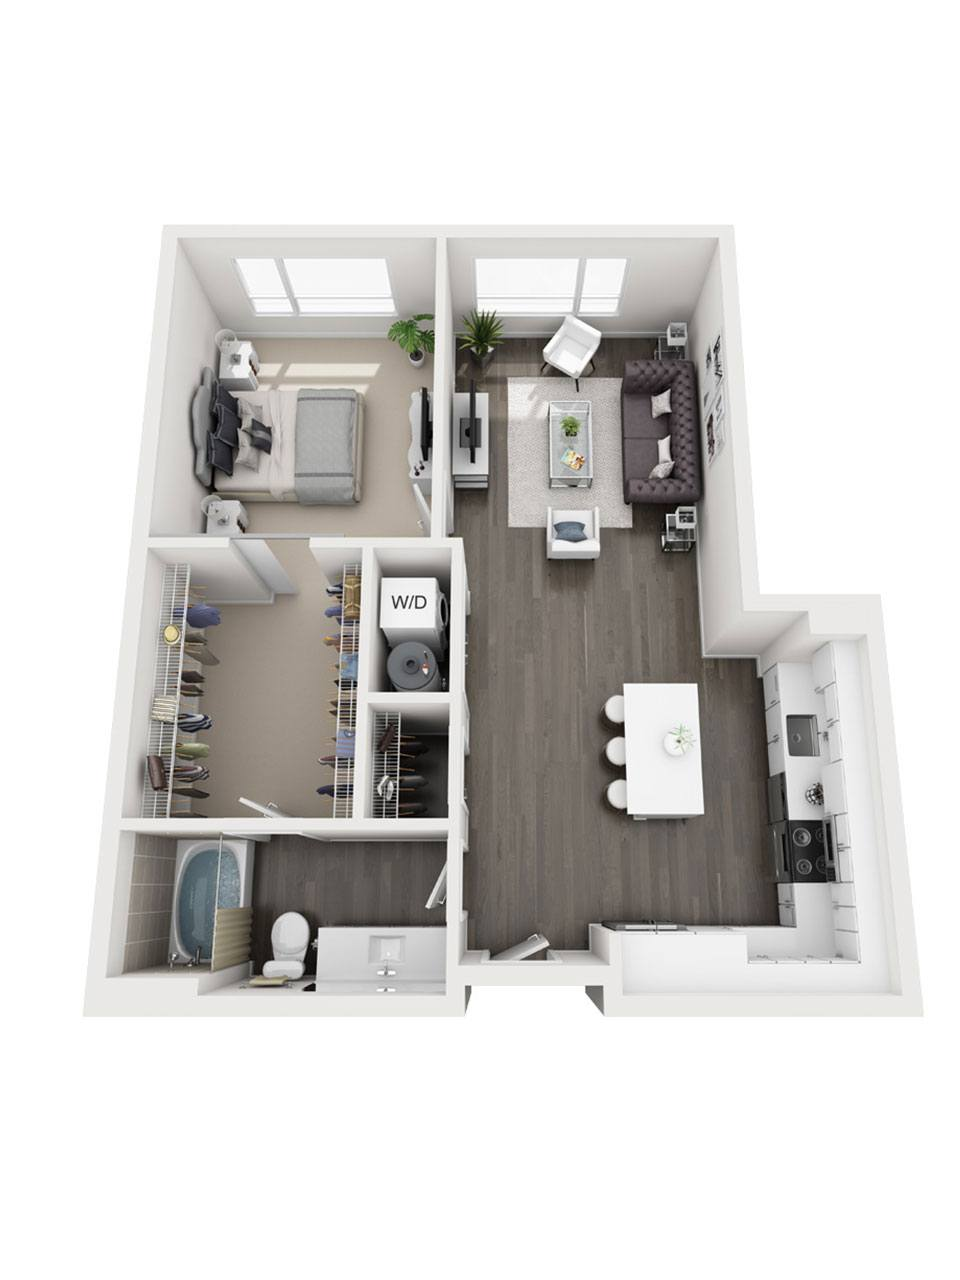 Plan 1 Bedroom – A5 | 1 Bath